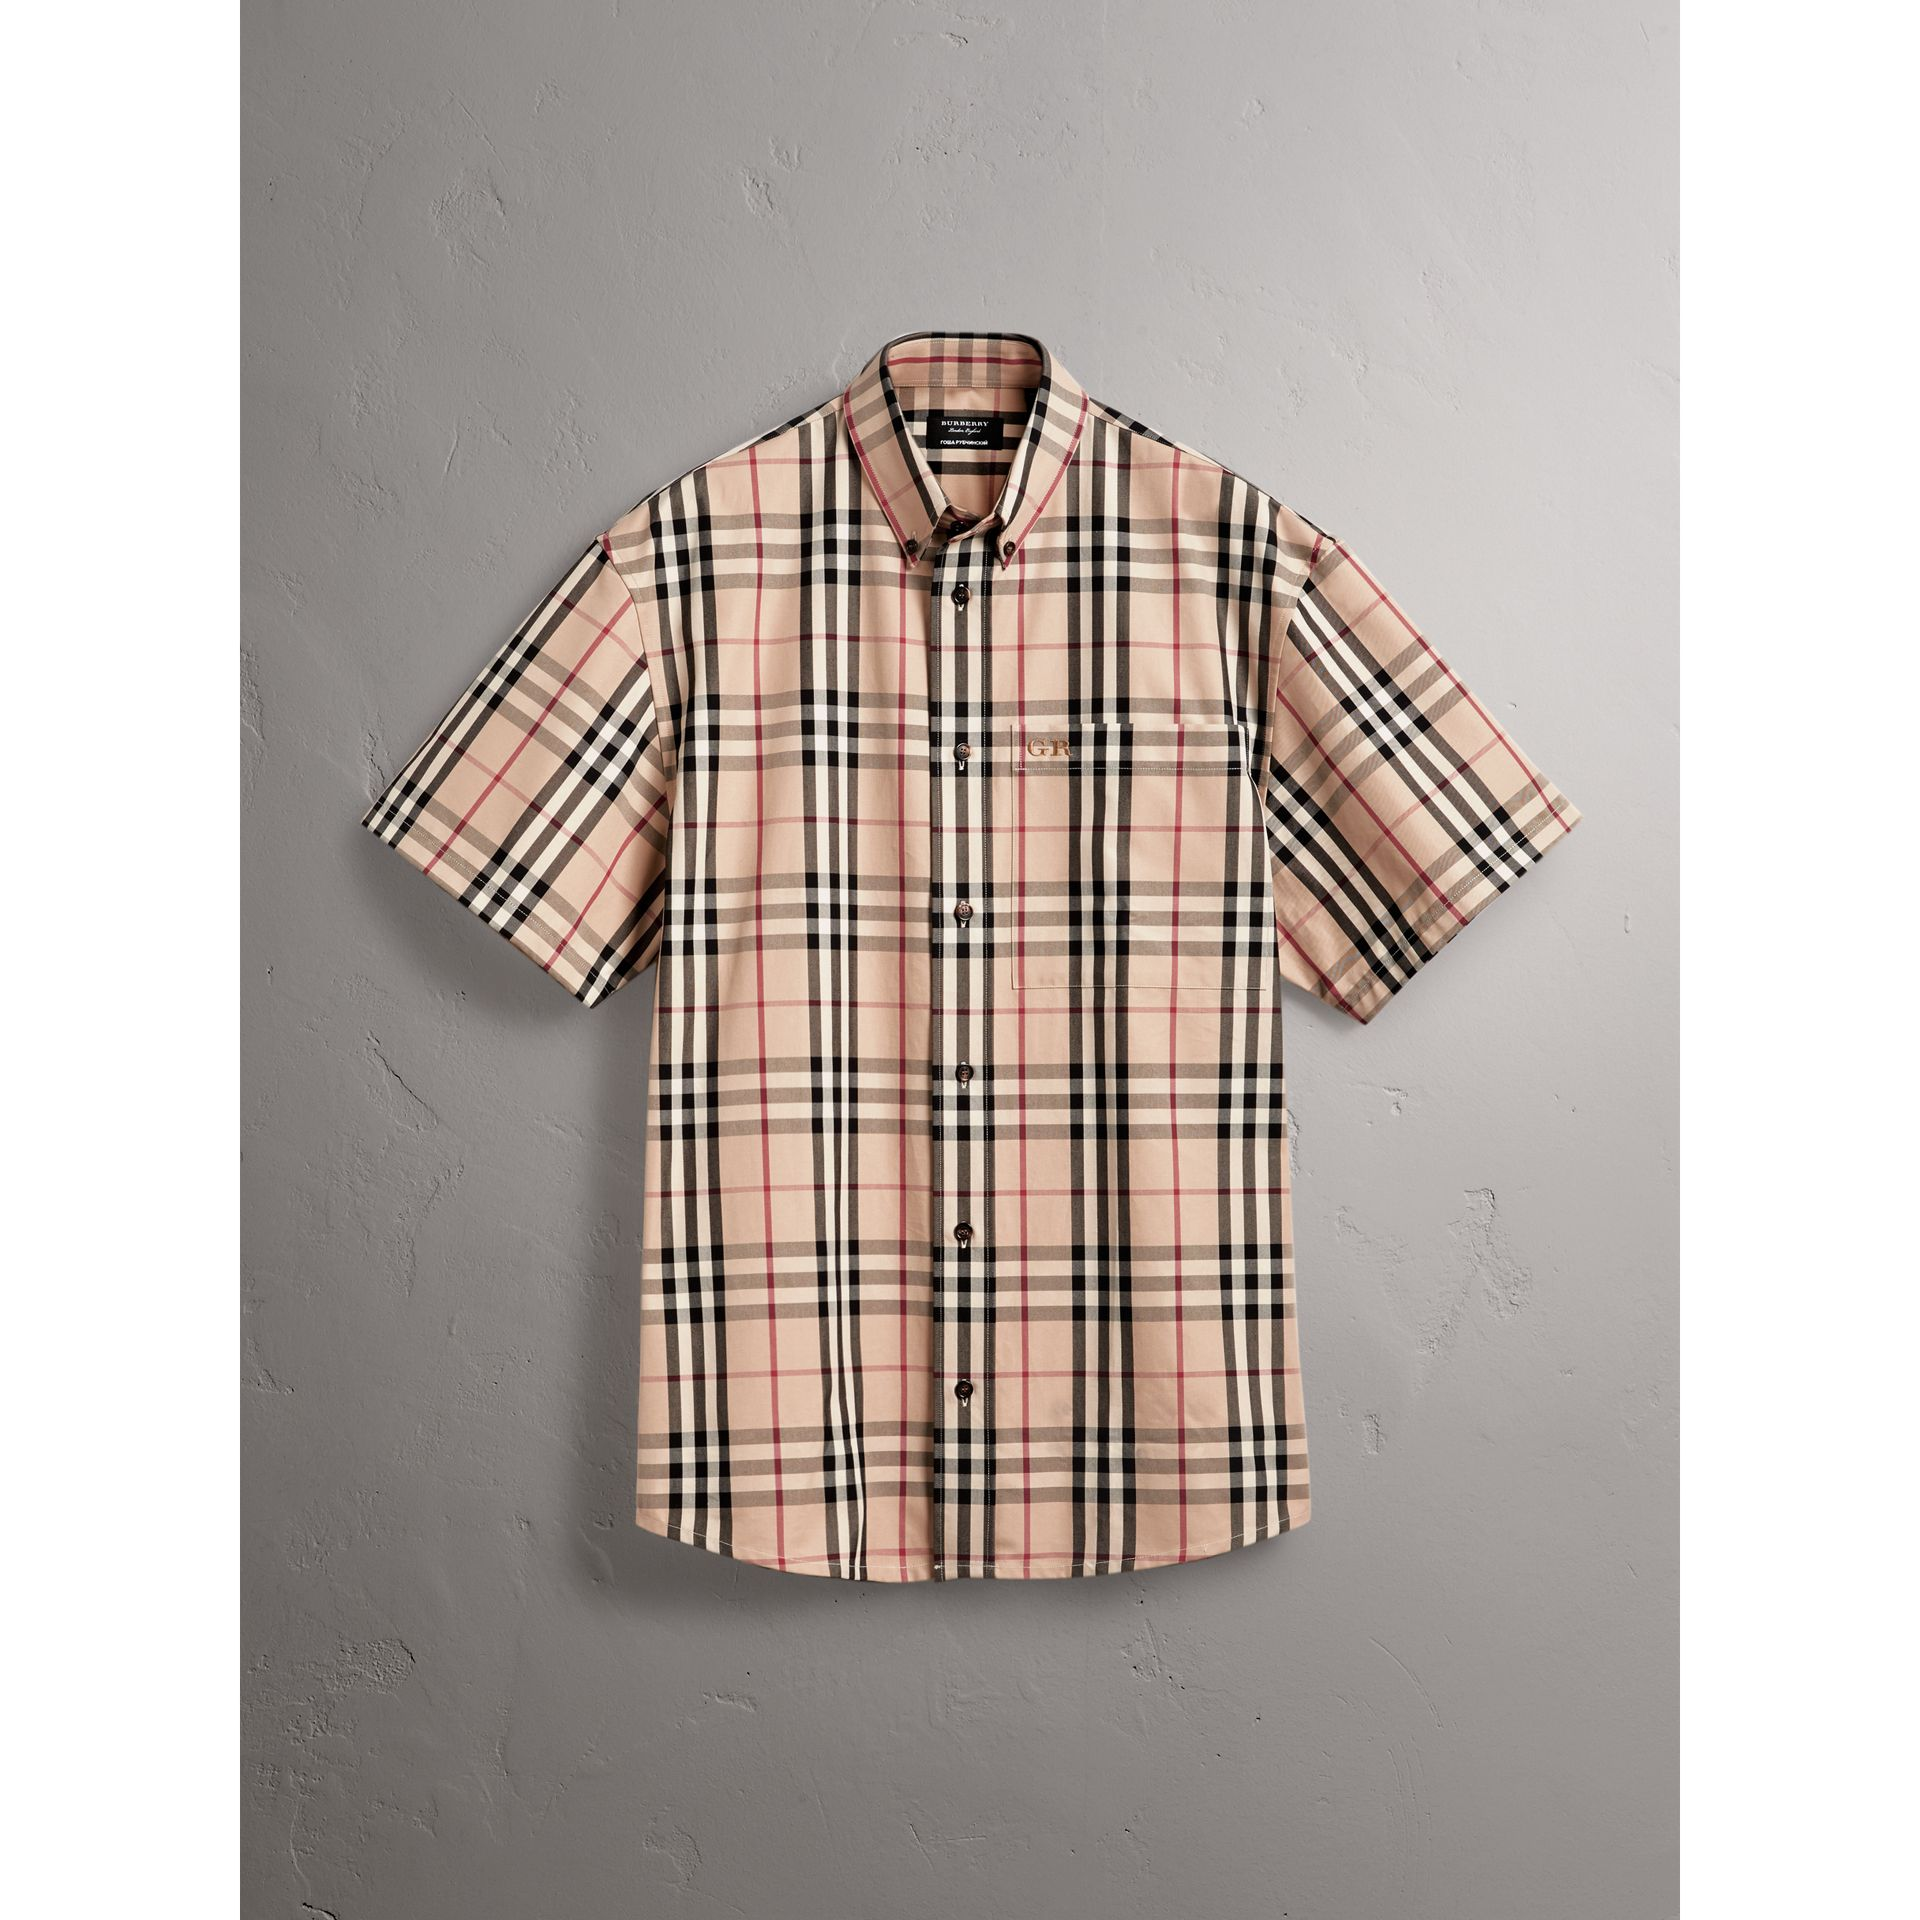 Gosha x Burberry Short-sleeve Check Shirt in Honey - Men | Burberry United States - gallery image 4